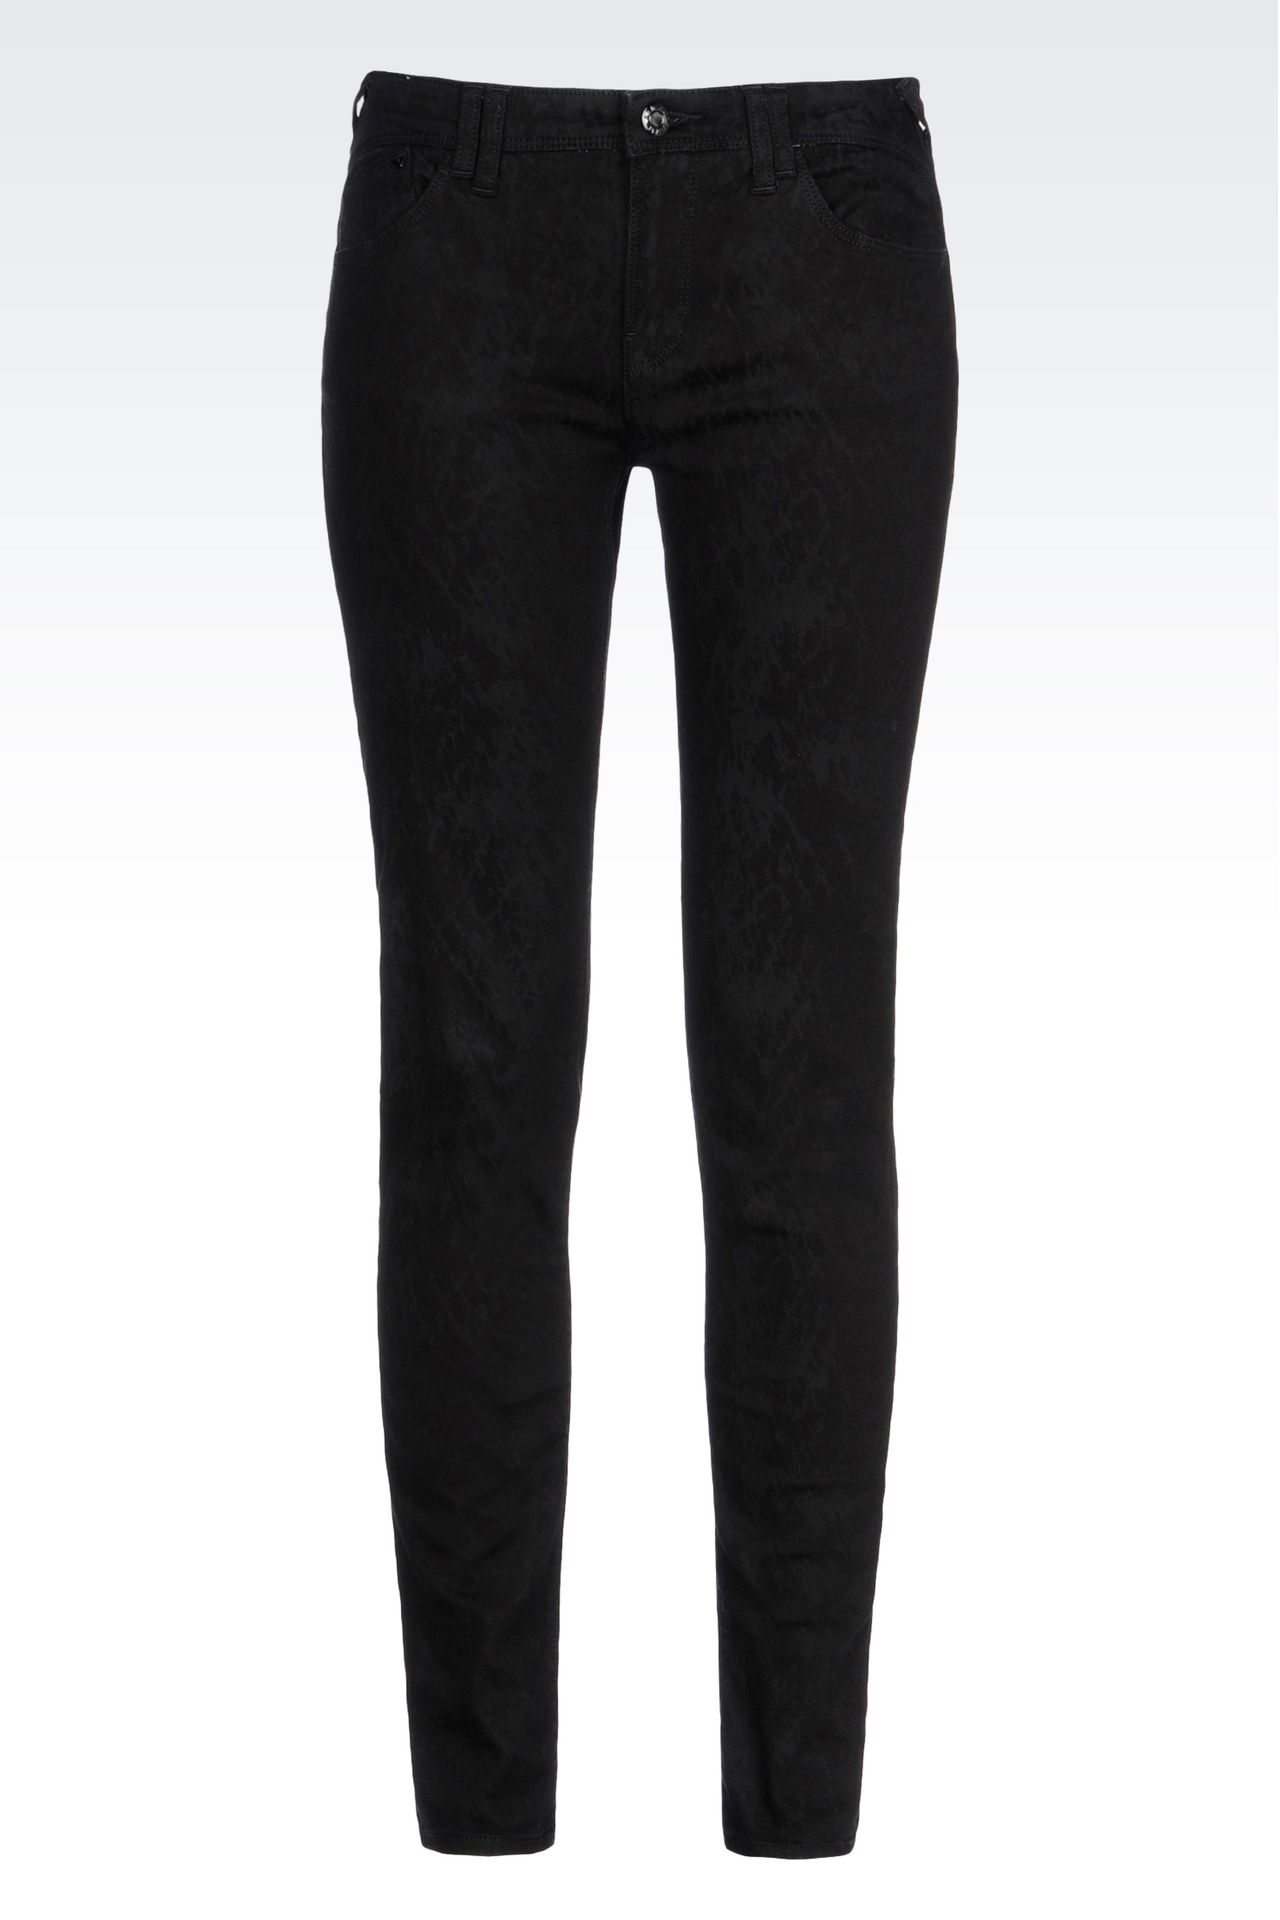 SKINNY JEANS IN CLEAN WASH JACQUARD DENIM: Jeans Women by Armani - 0